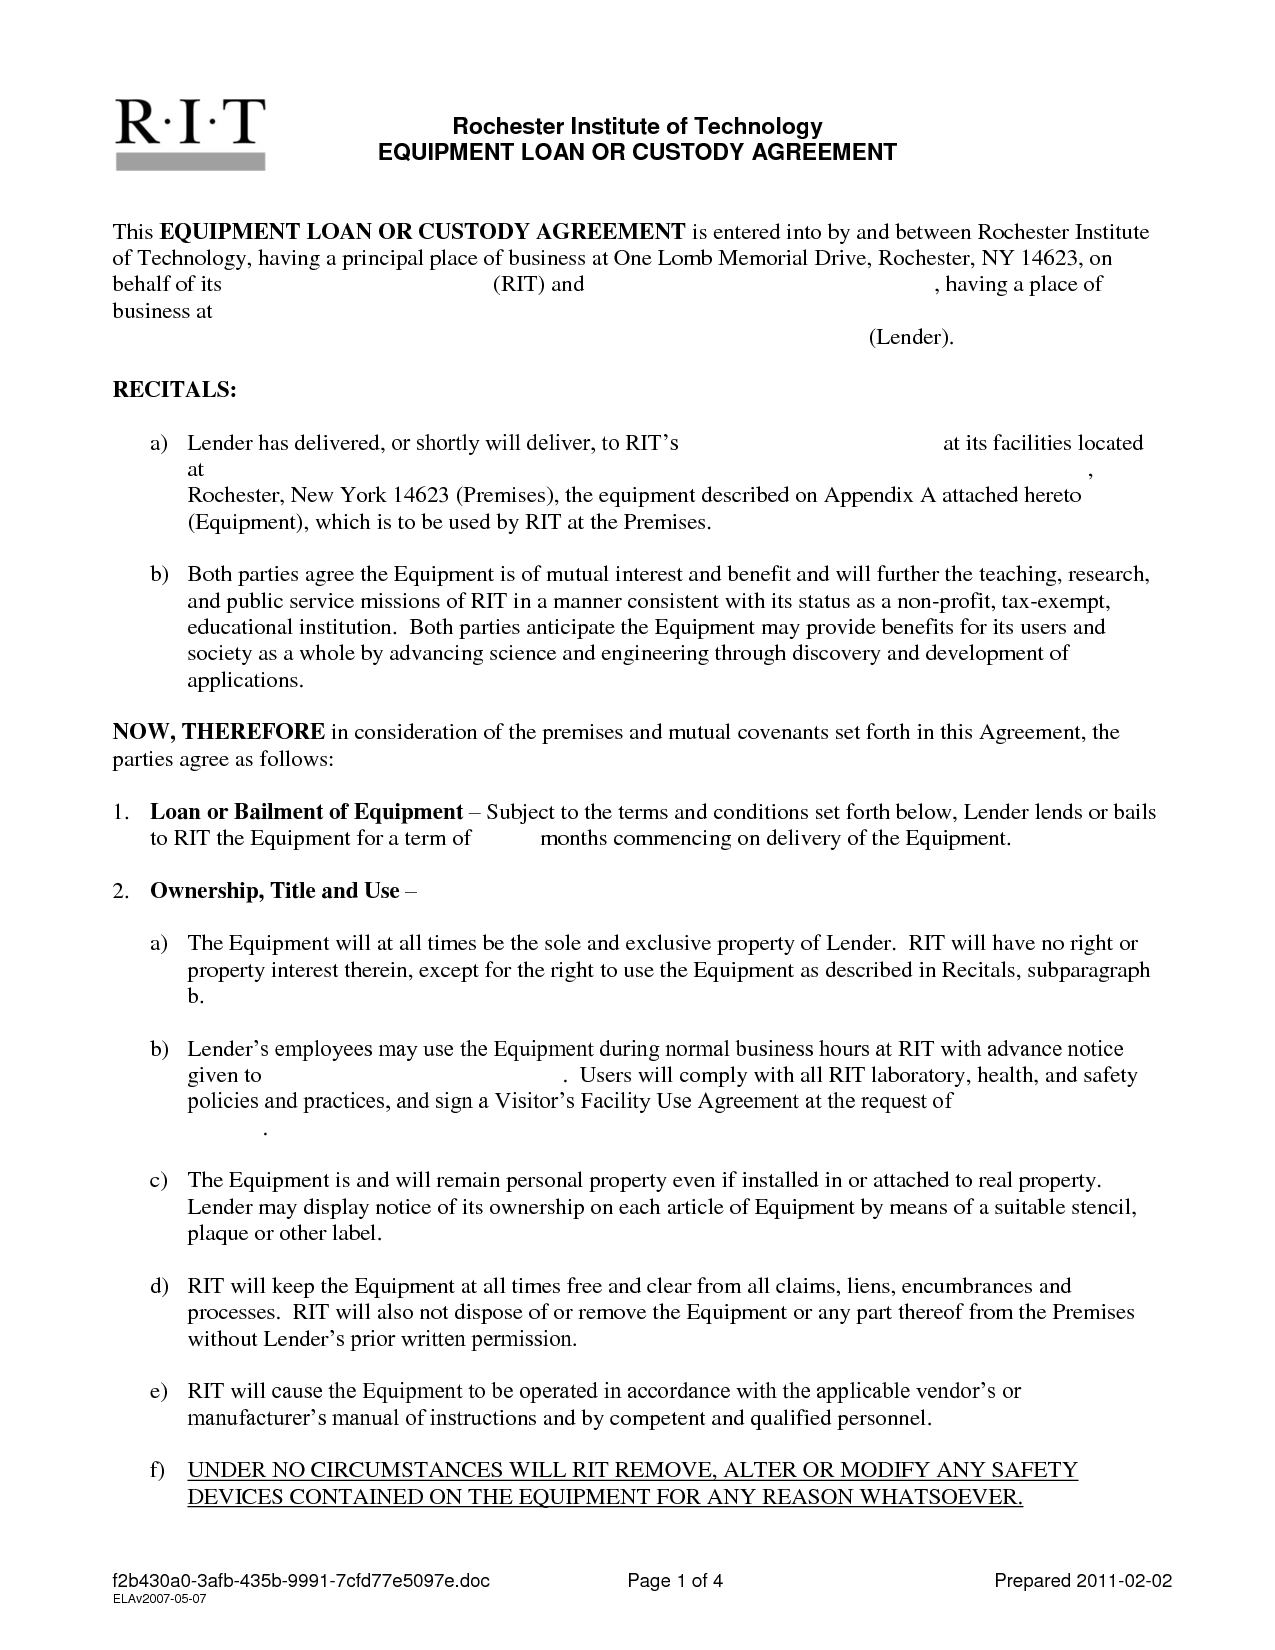 Free Loan Agreement Template Loan Contract Template 26 Examples In Word Pdf  Free, 5 Loan Agreement Templates To Write Perfect Agreements, Loan Agreement  ...  Microsoft Word Contract Template Free